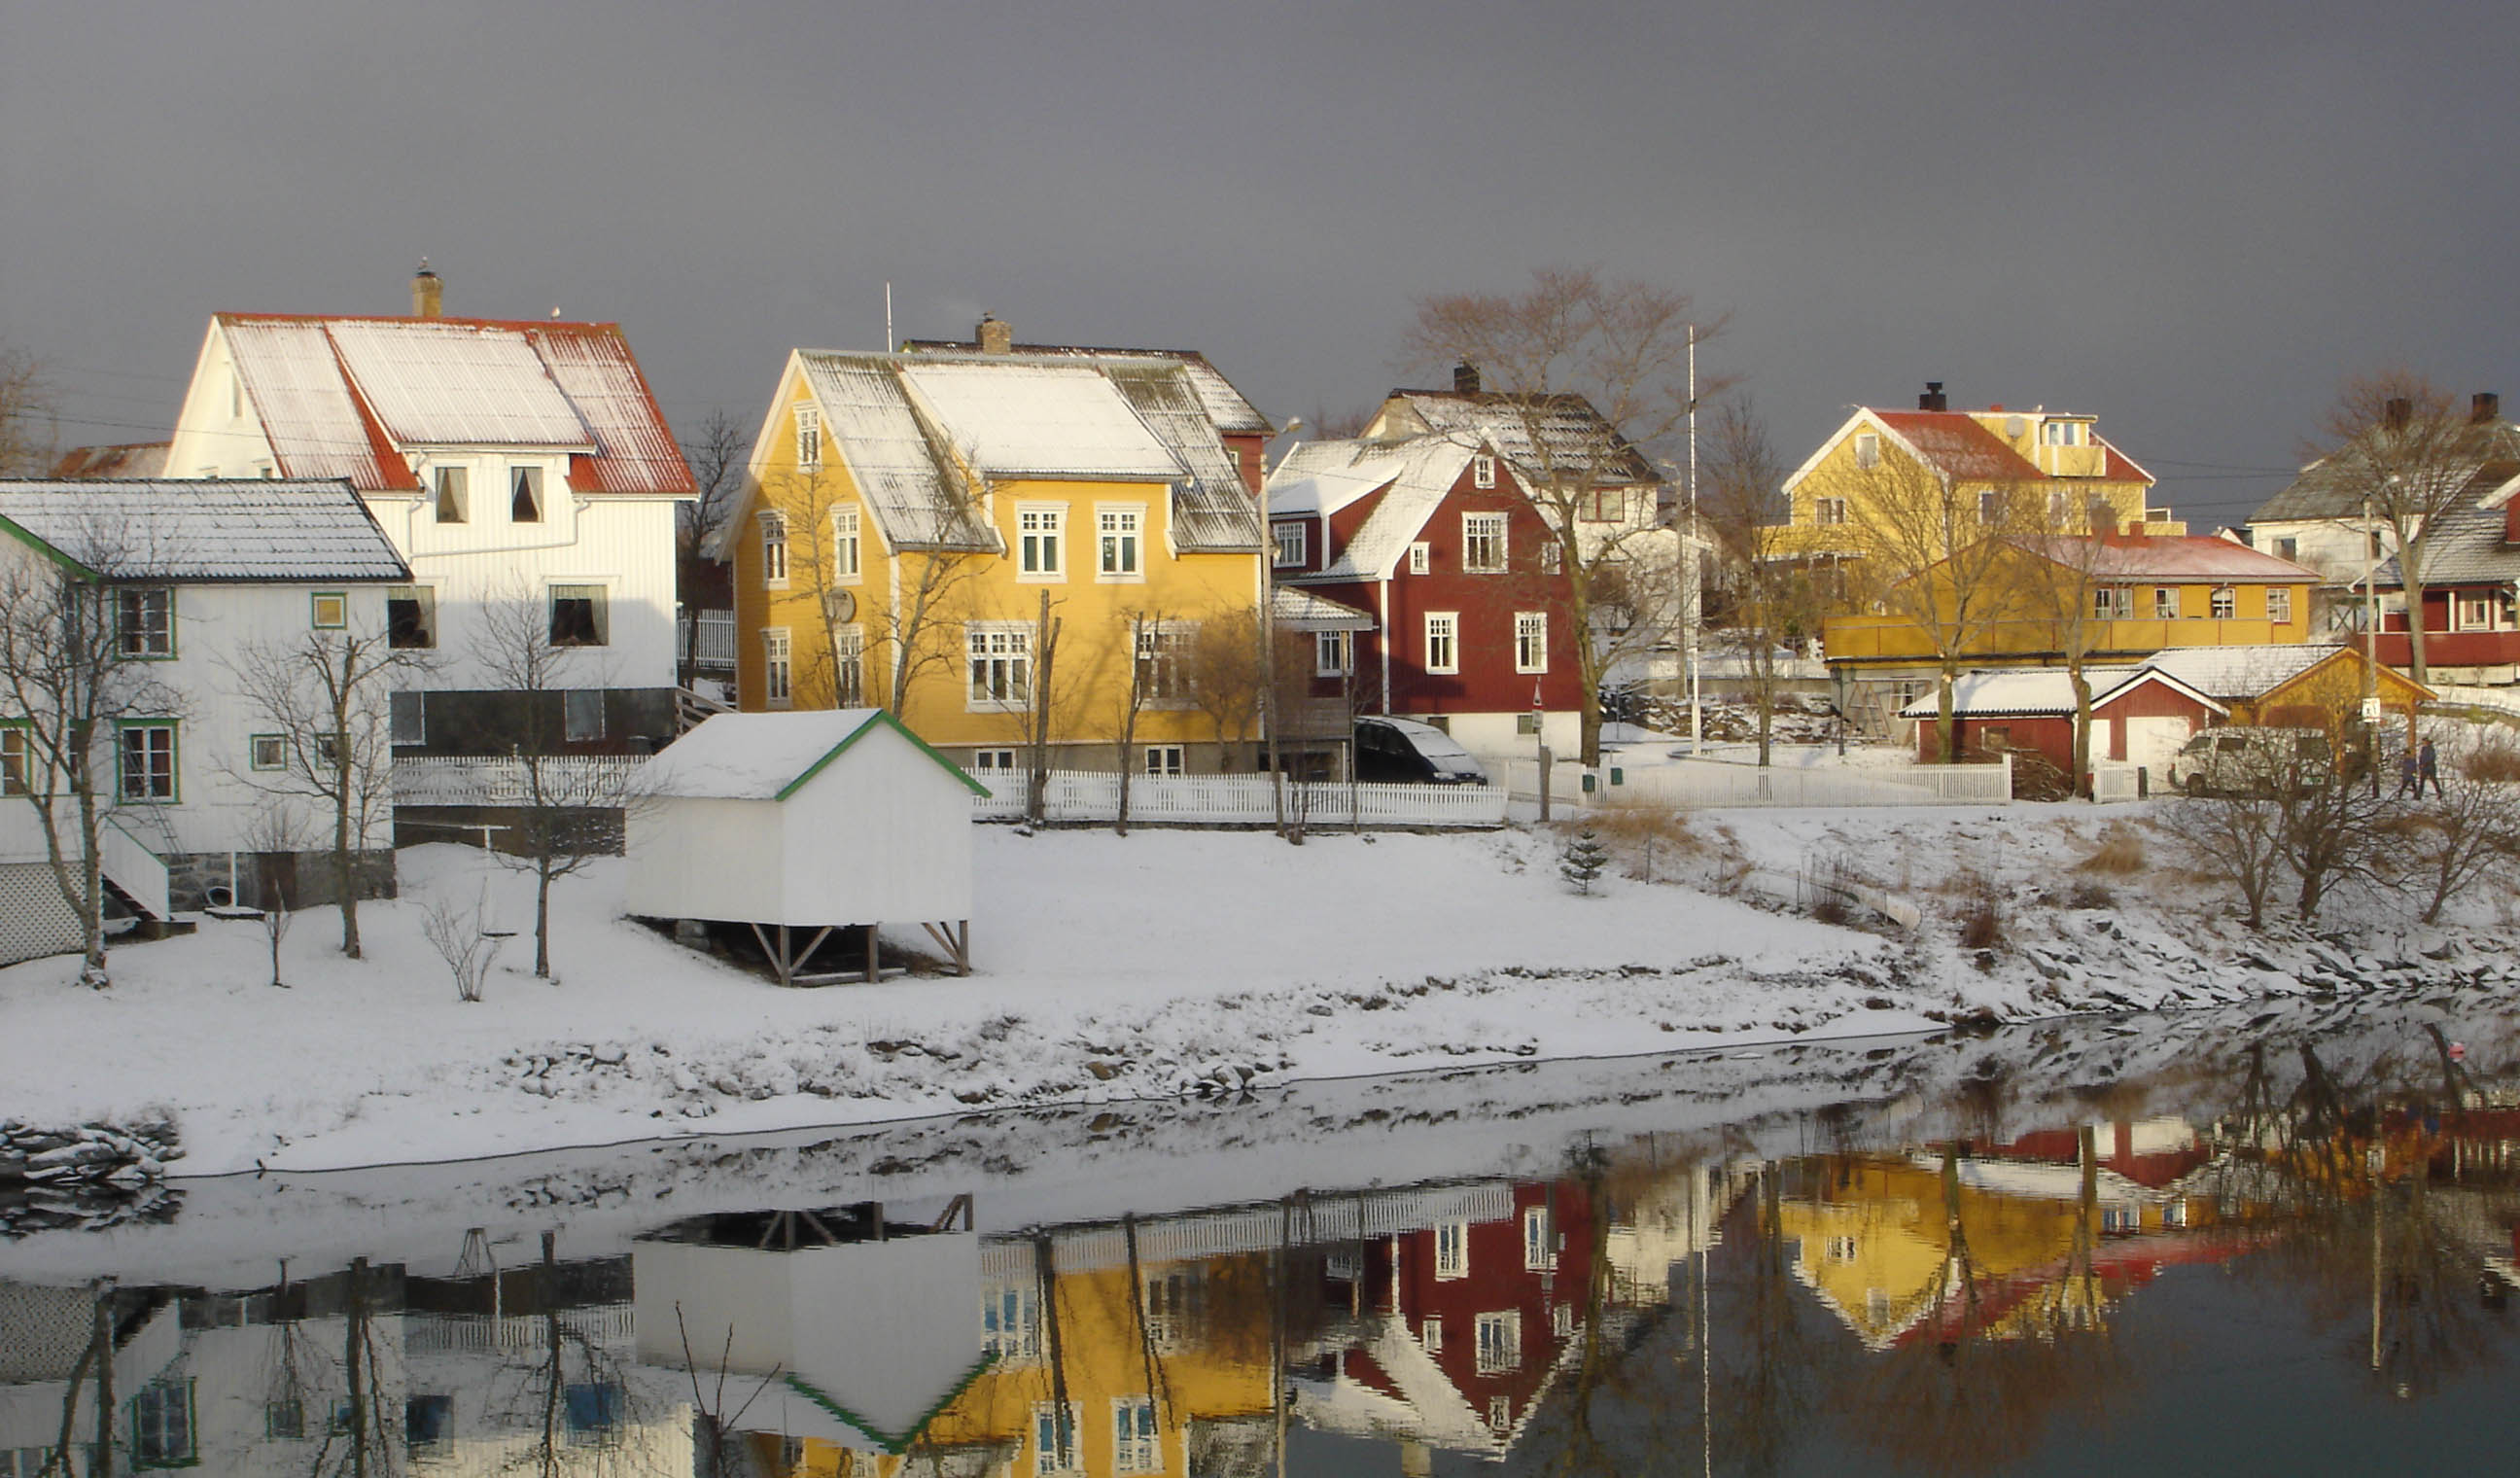 Colorful houses in the small town of Brønnøy at winter..